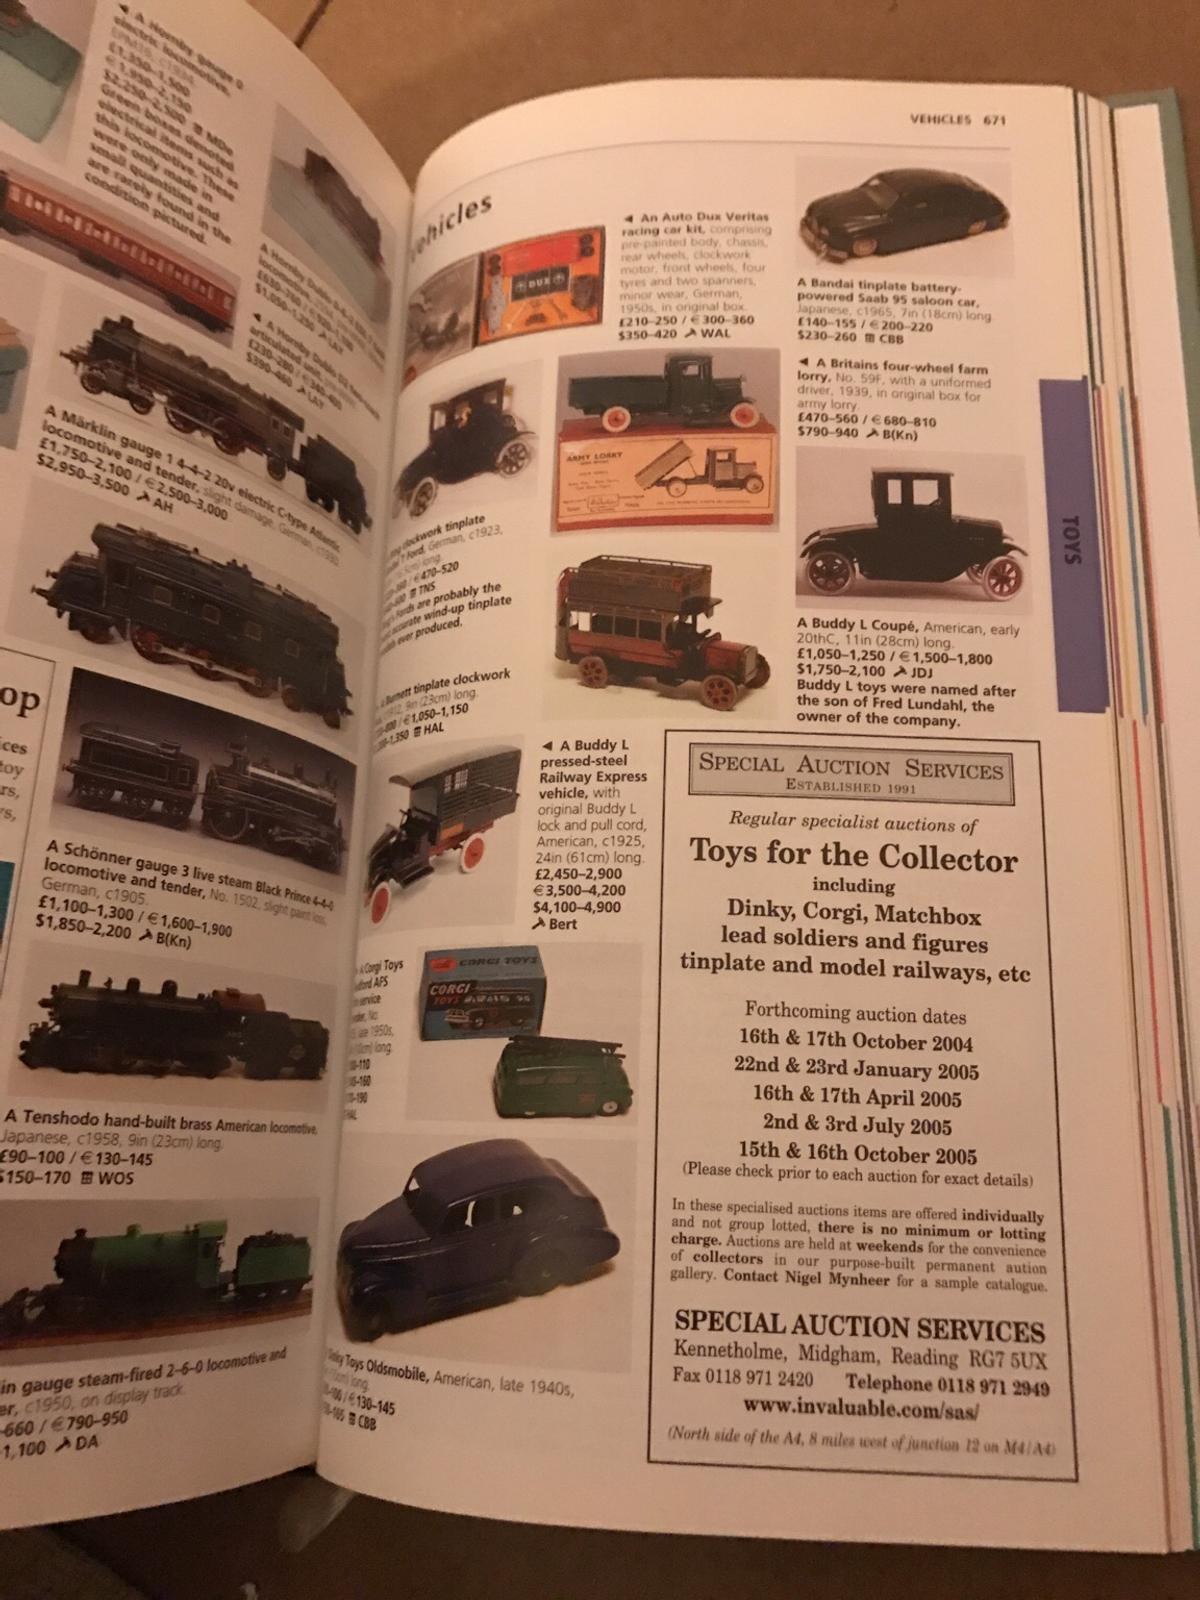 Millers antique price guide book 2005 in SS2-Sea for £3 00 for sale